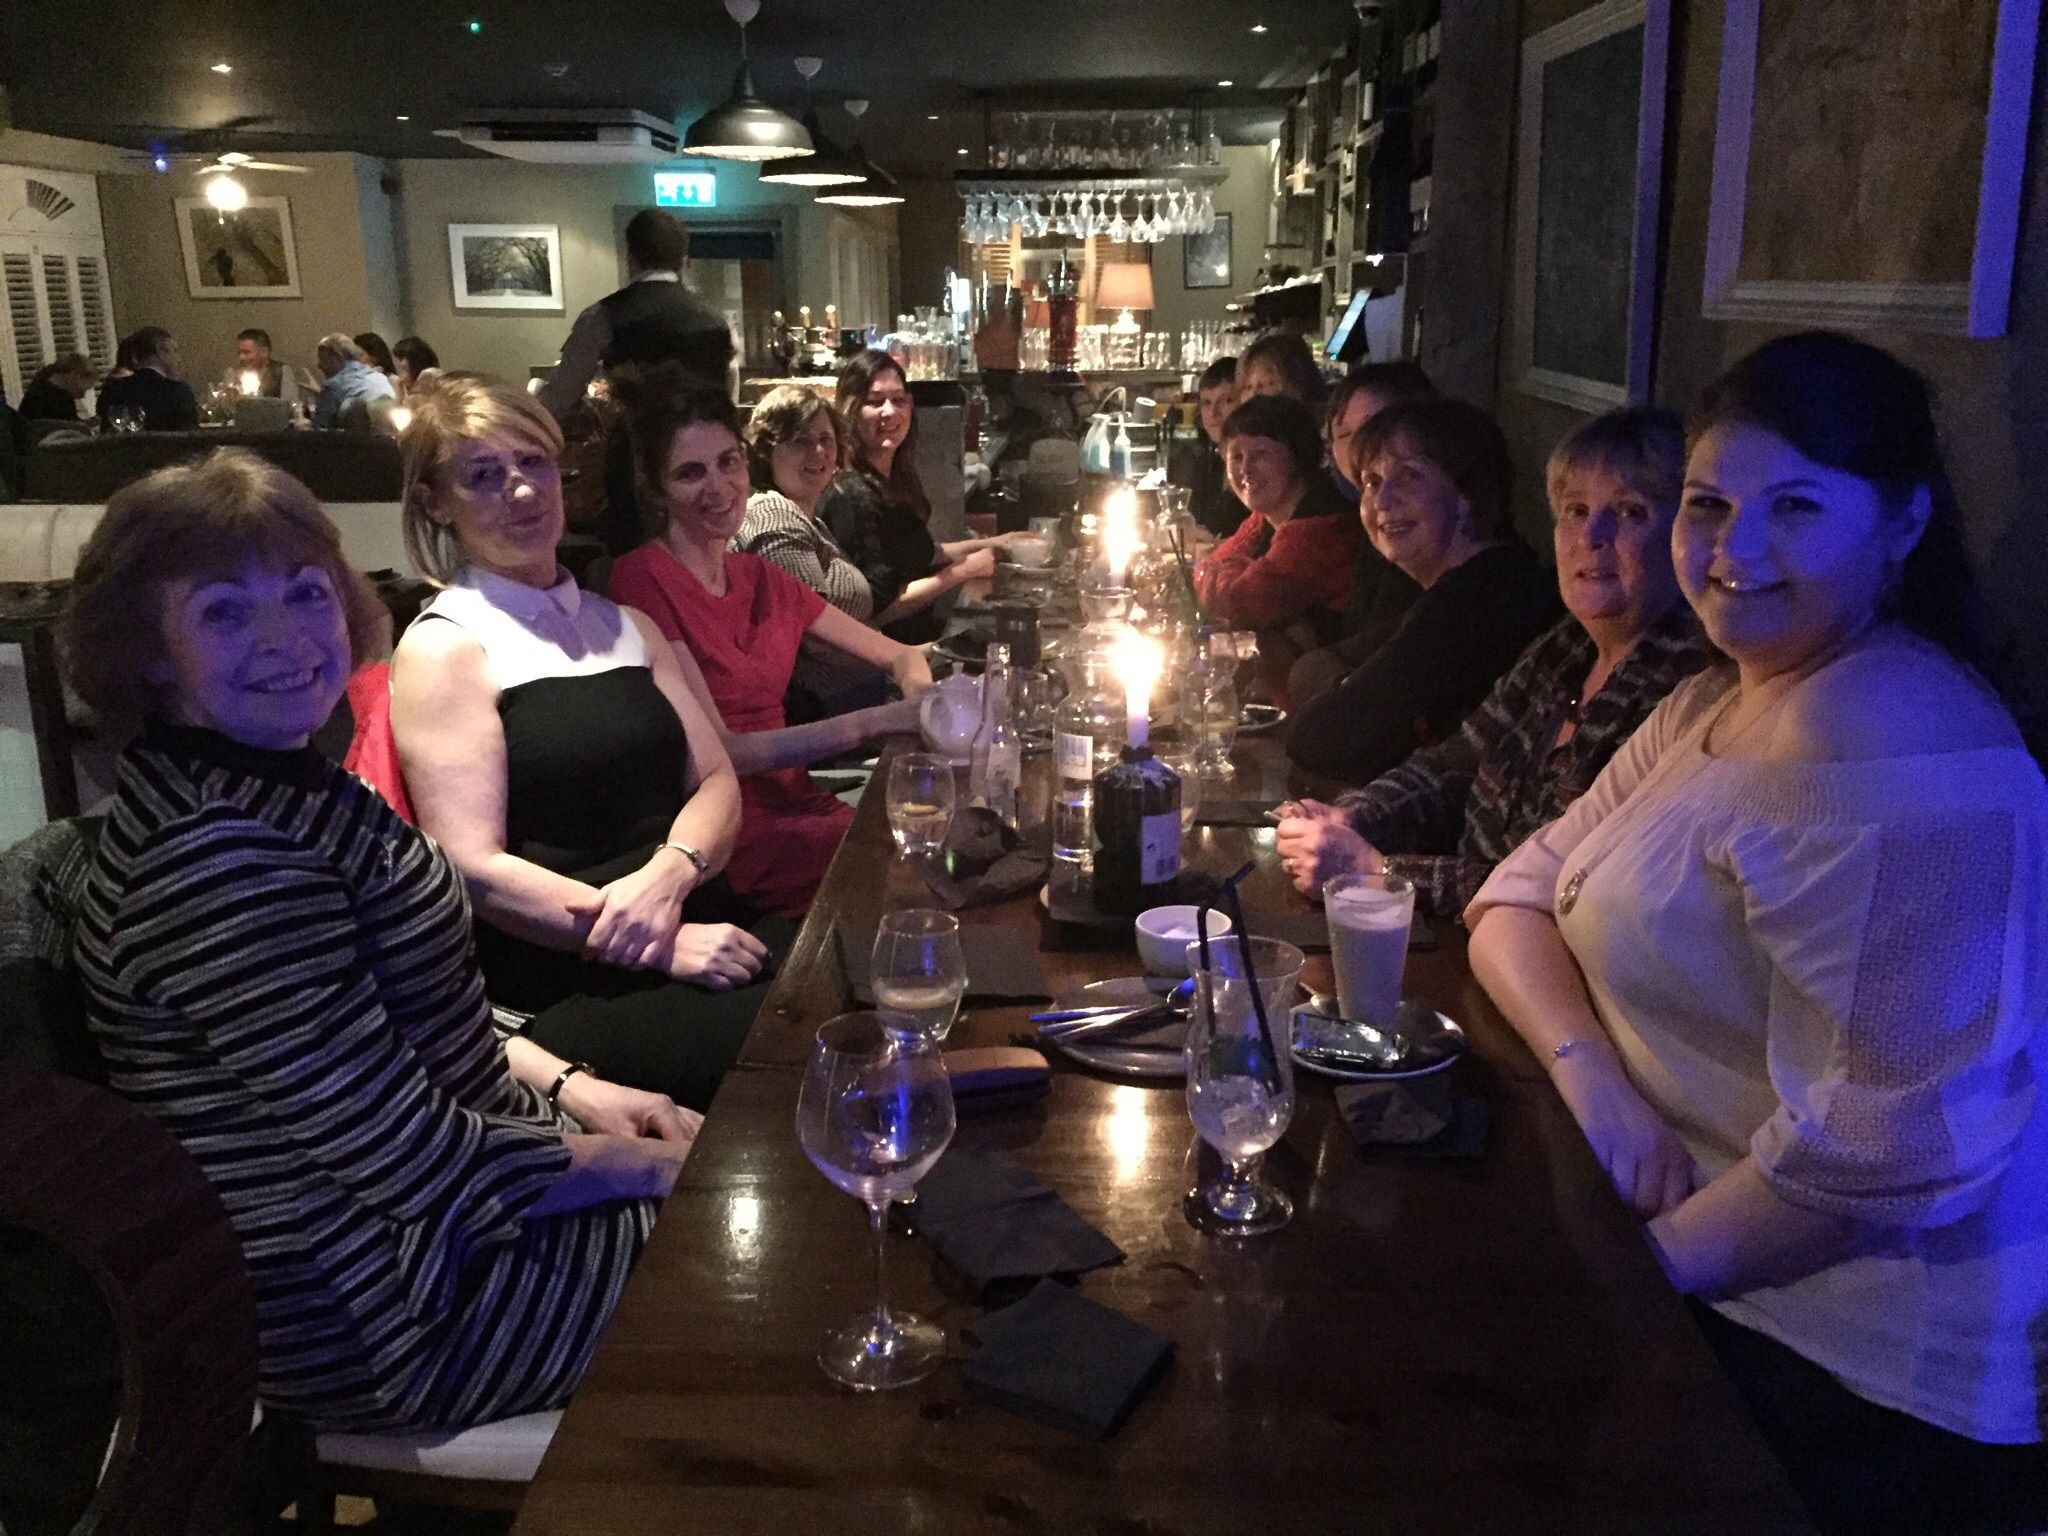 Find a group in Maynooth - Meetup